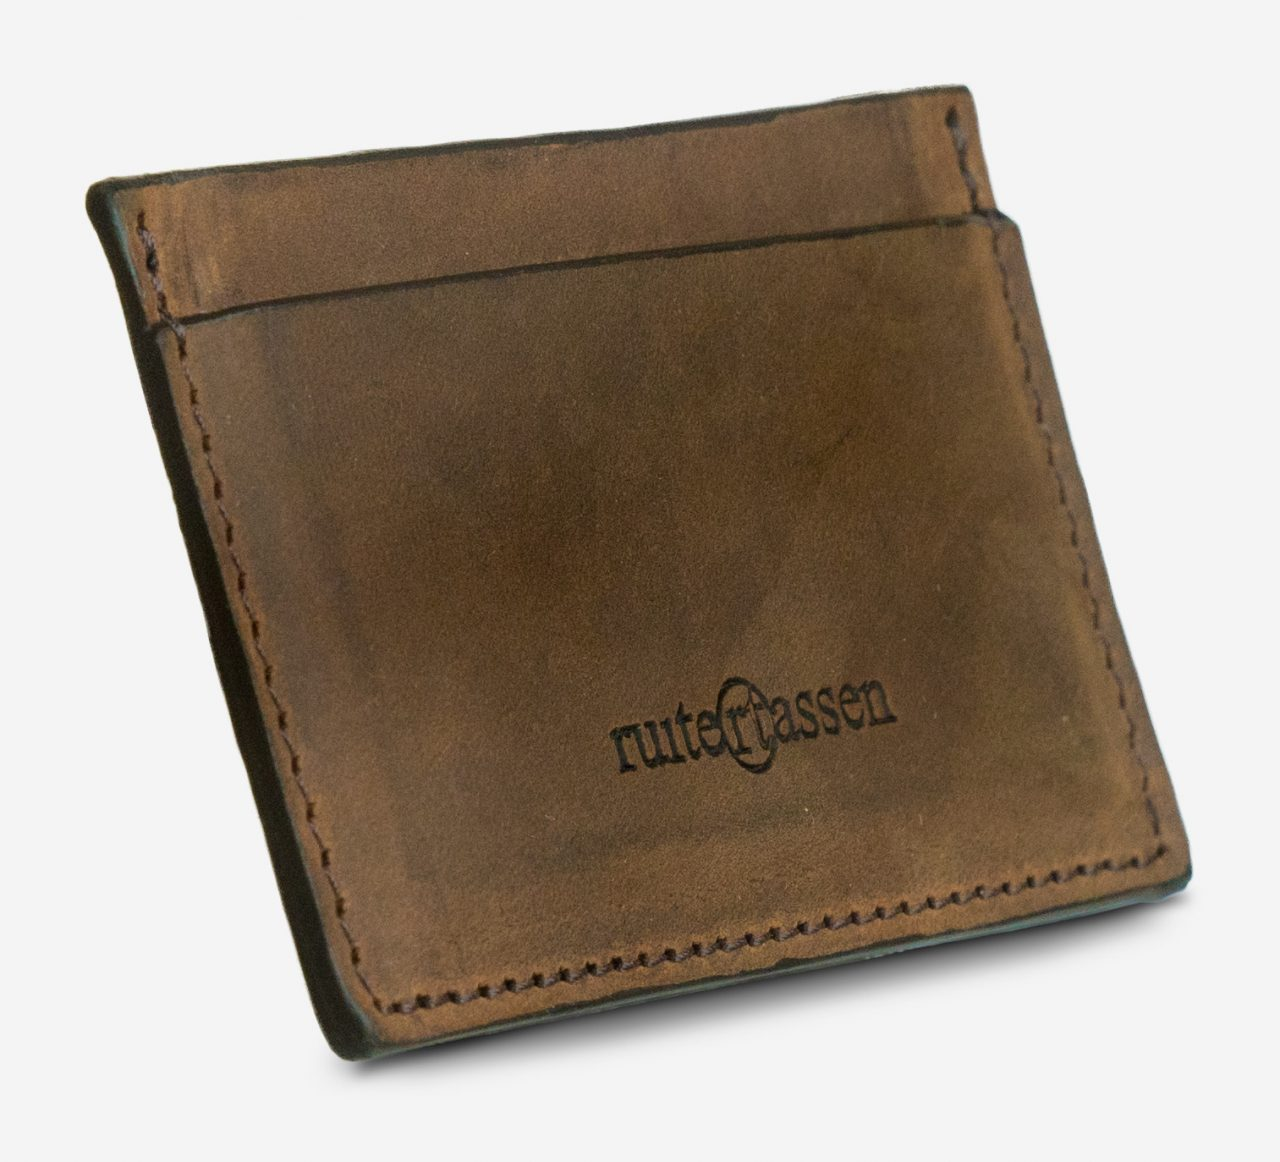 Brown leather card holder side view.